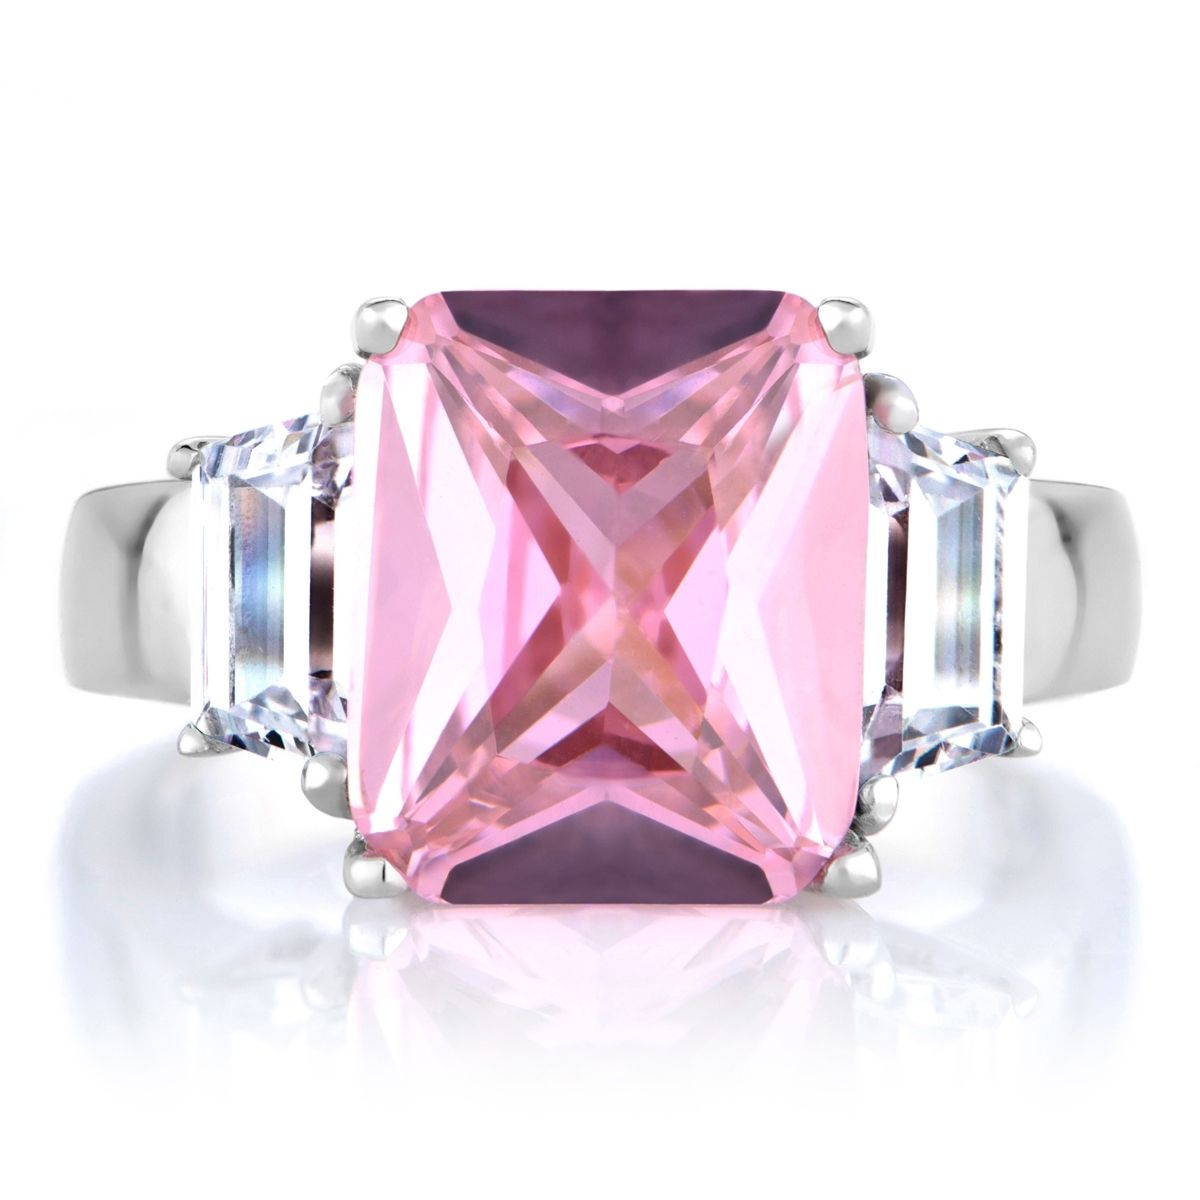 Jennifer Lopez Pink Diamond Ring Replica | Ring | Pinterest | Pink ...